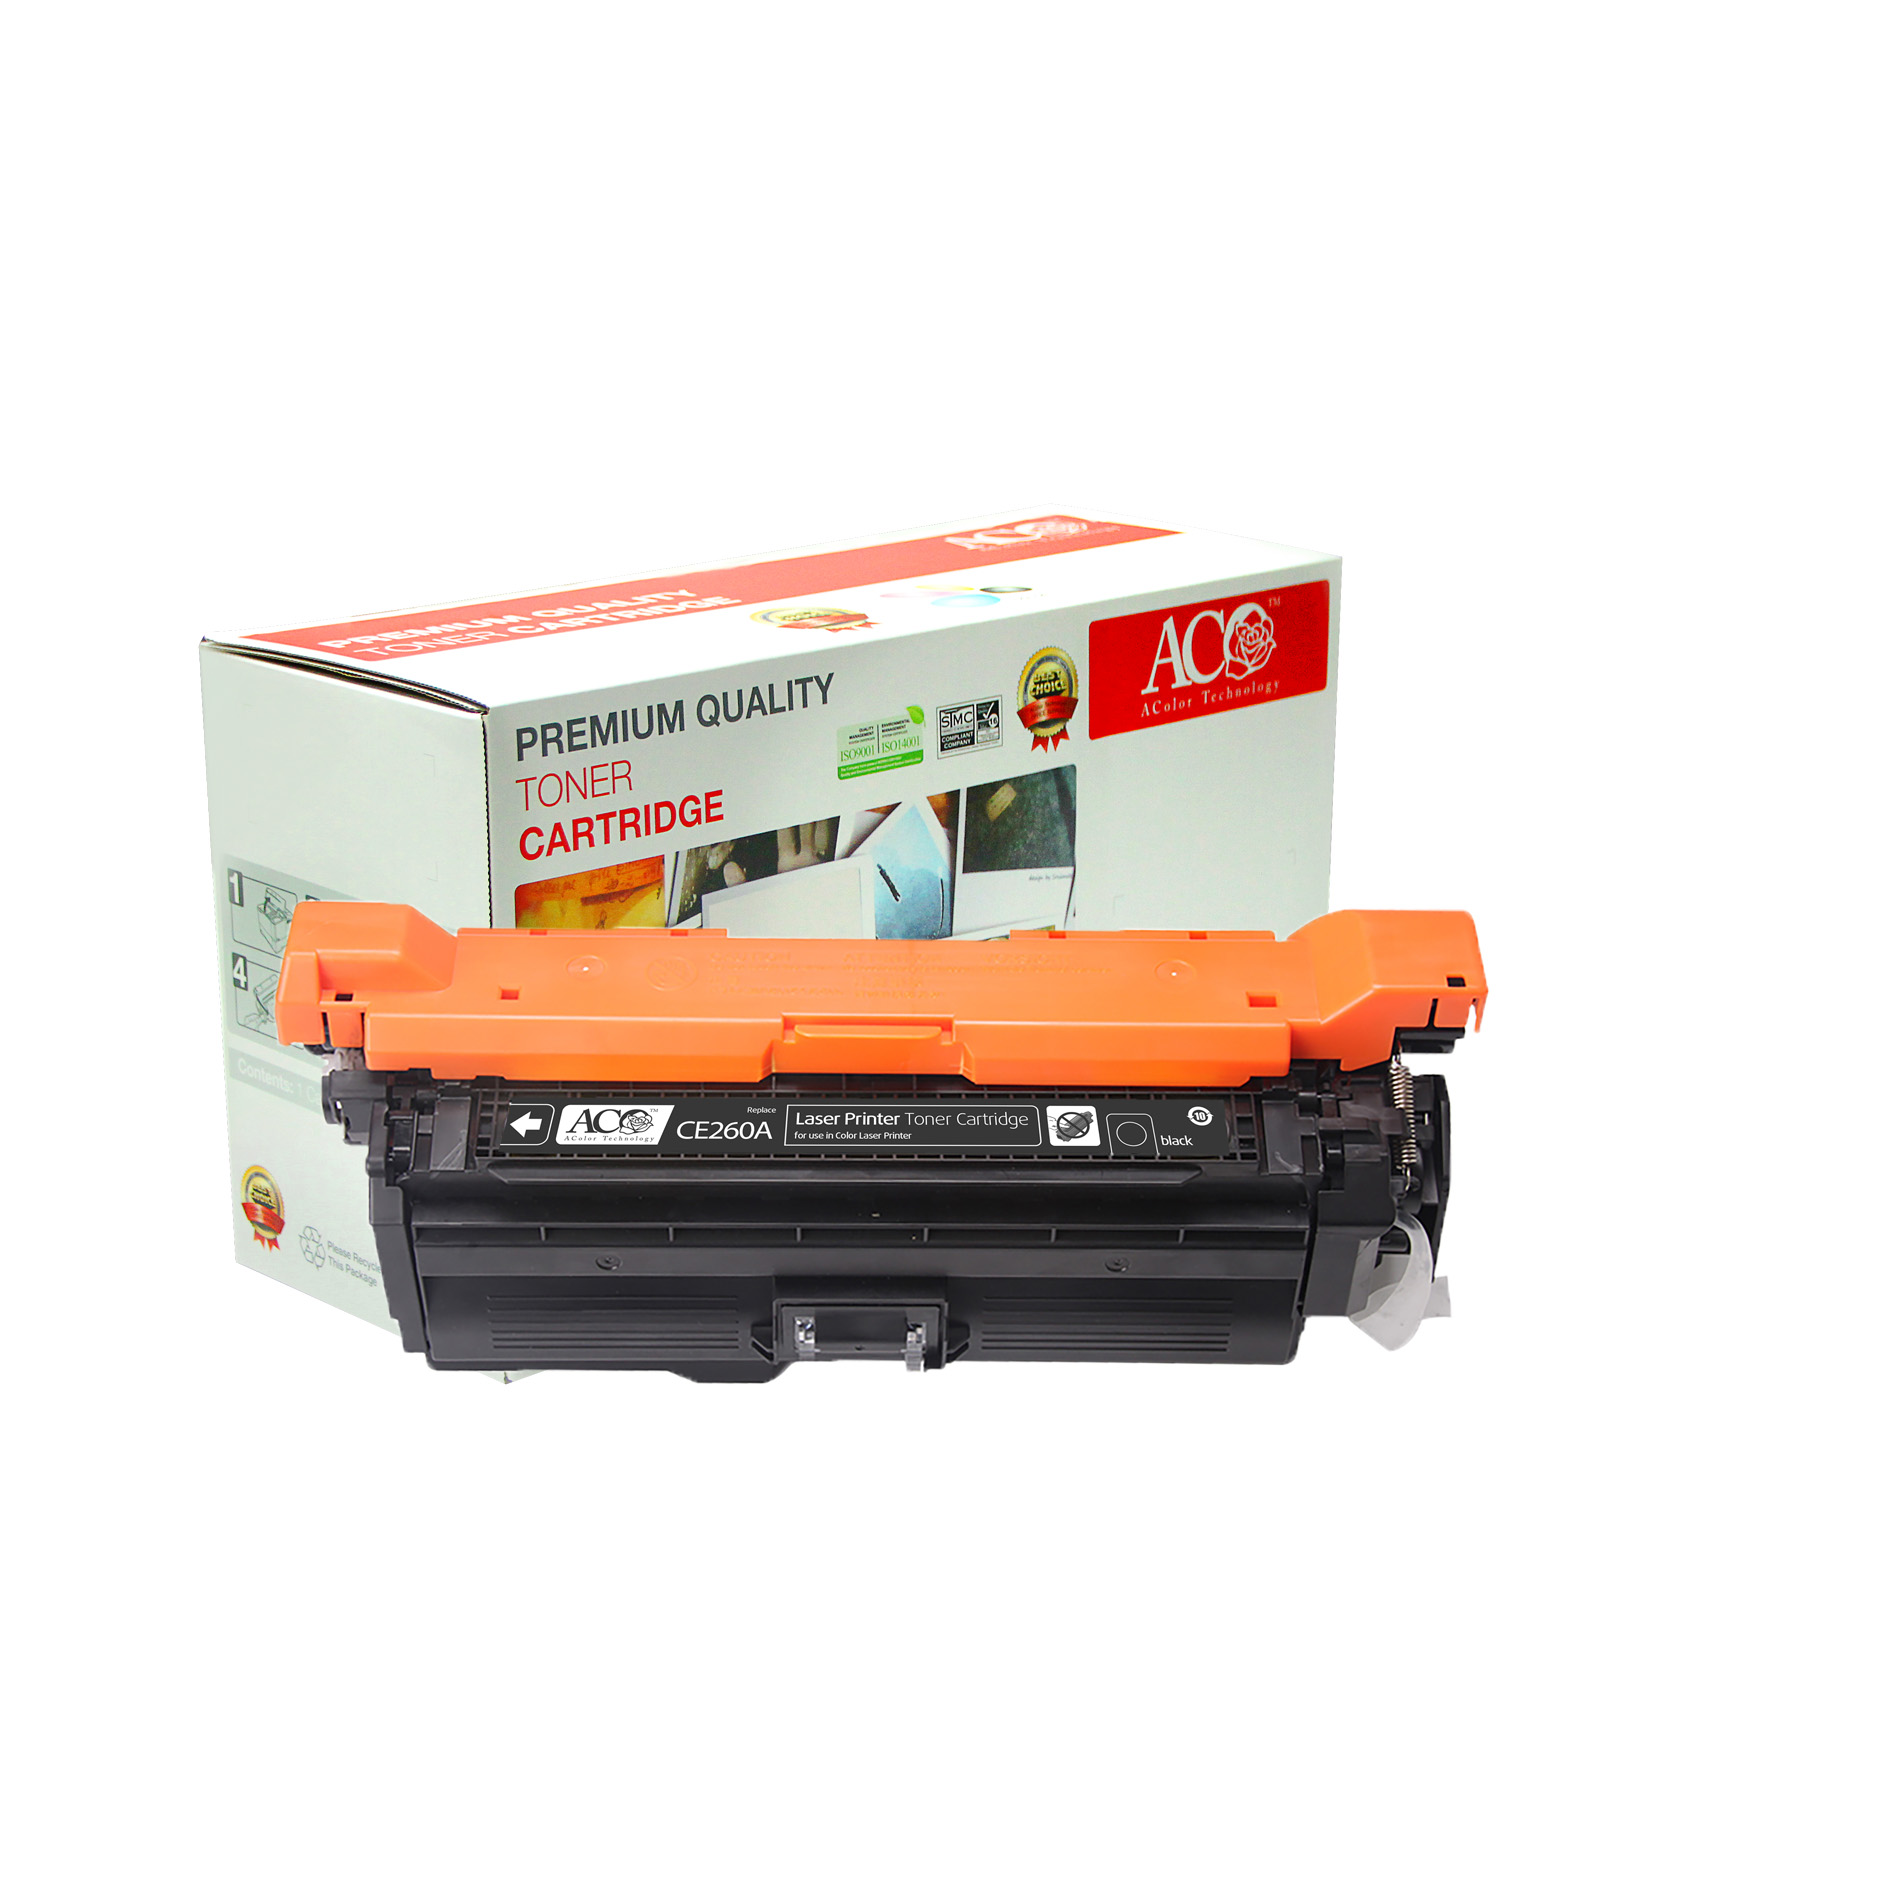 Compatible Color Toner Cartridge for HP CE260A CE261A CE262A CE263A(for HP Color LaserJet CP4020 4025 4520 4525 )